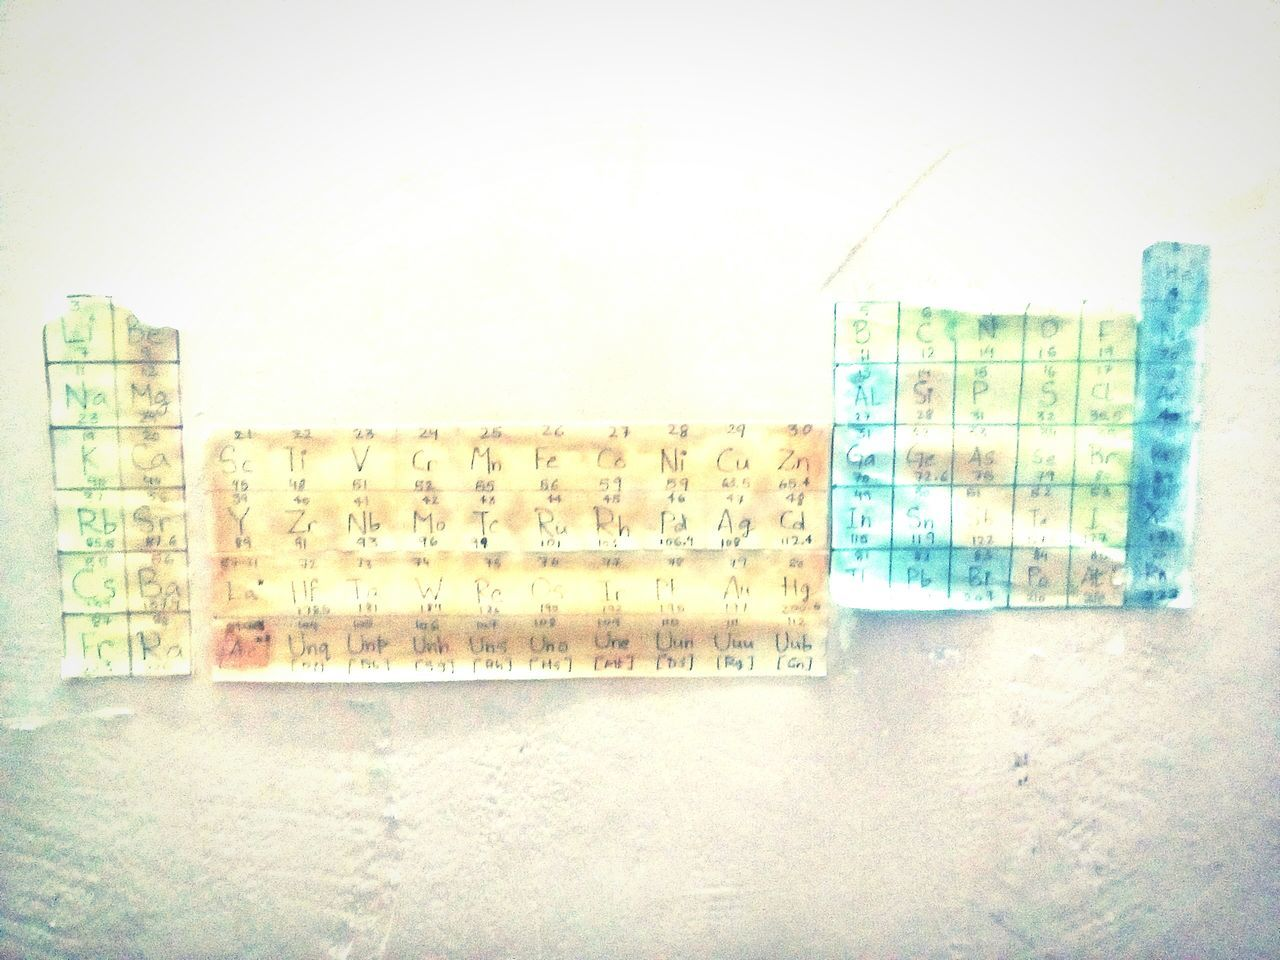 A table on the wall Third World Country Periodic Table Wall Broken Wall Periodic Chart